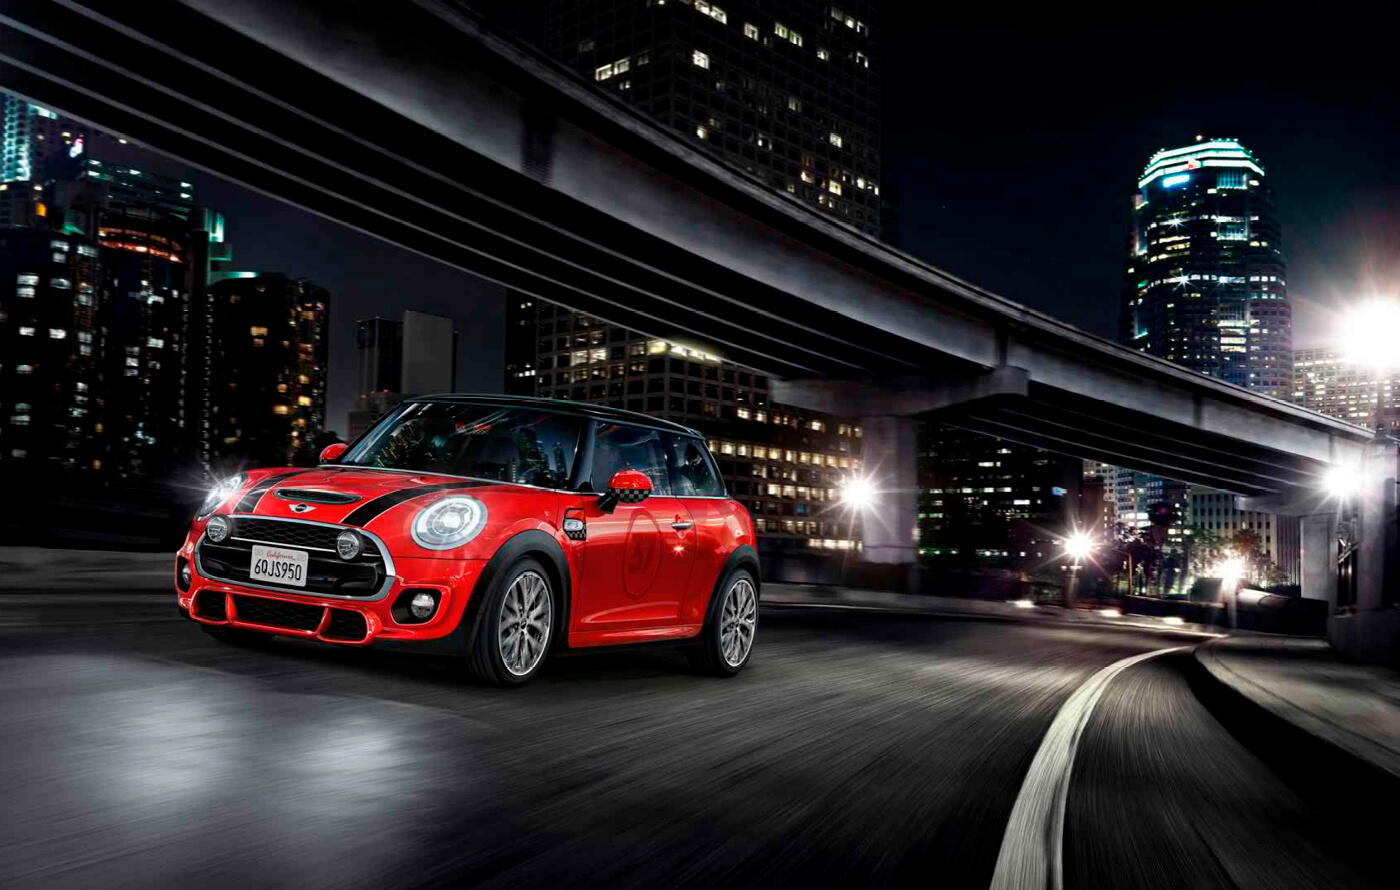 Full screen image of a red Mini John Cooper Works, racing along an urban street at night